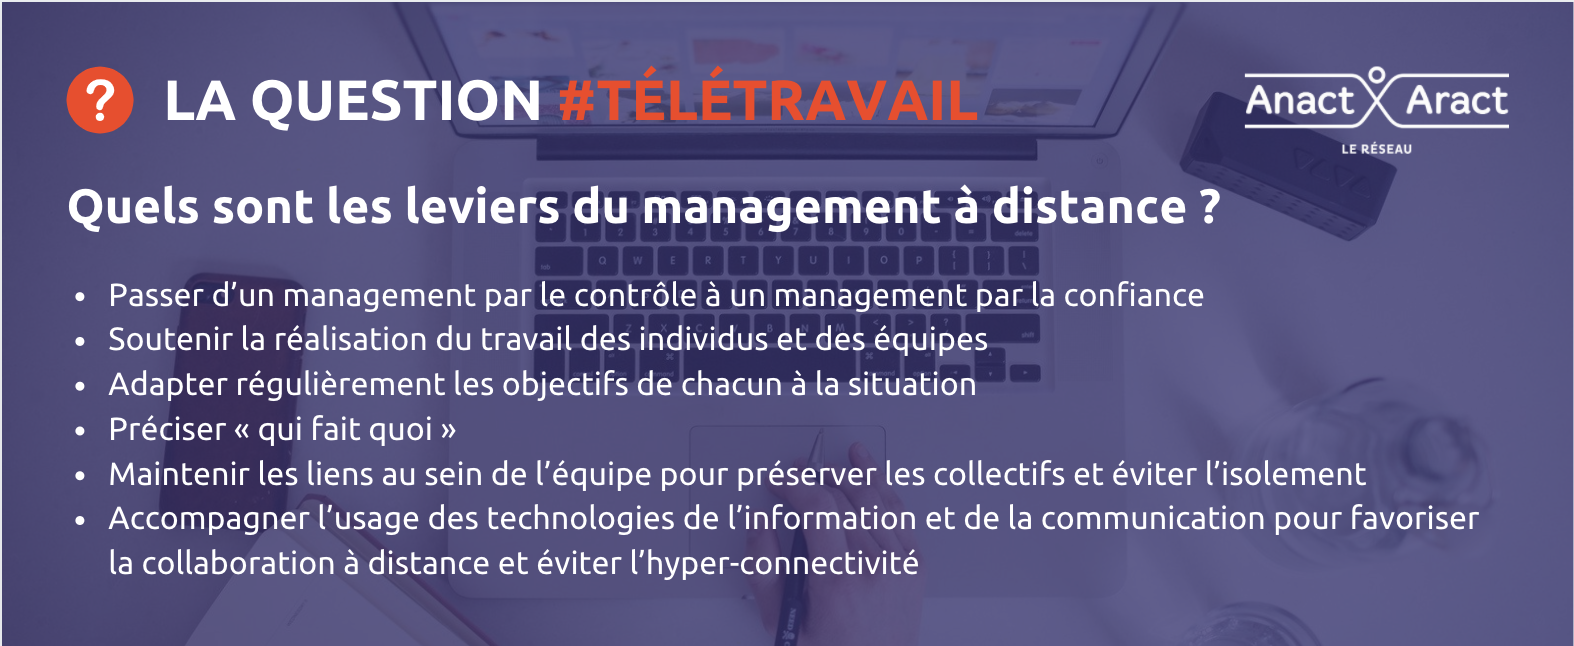 question teletravail 3